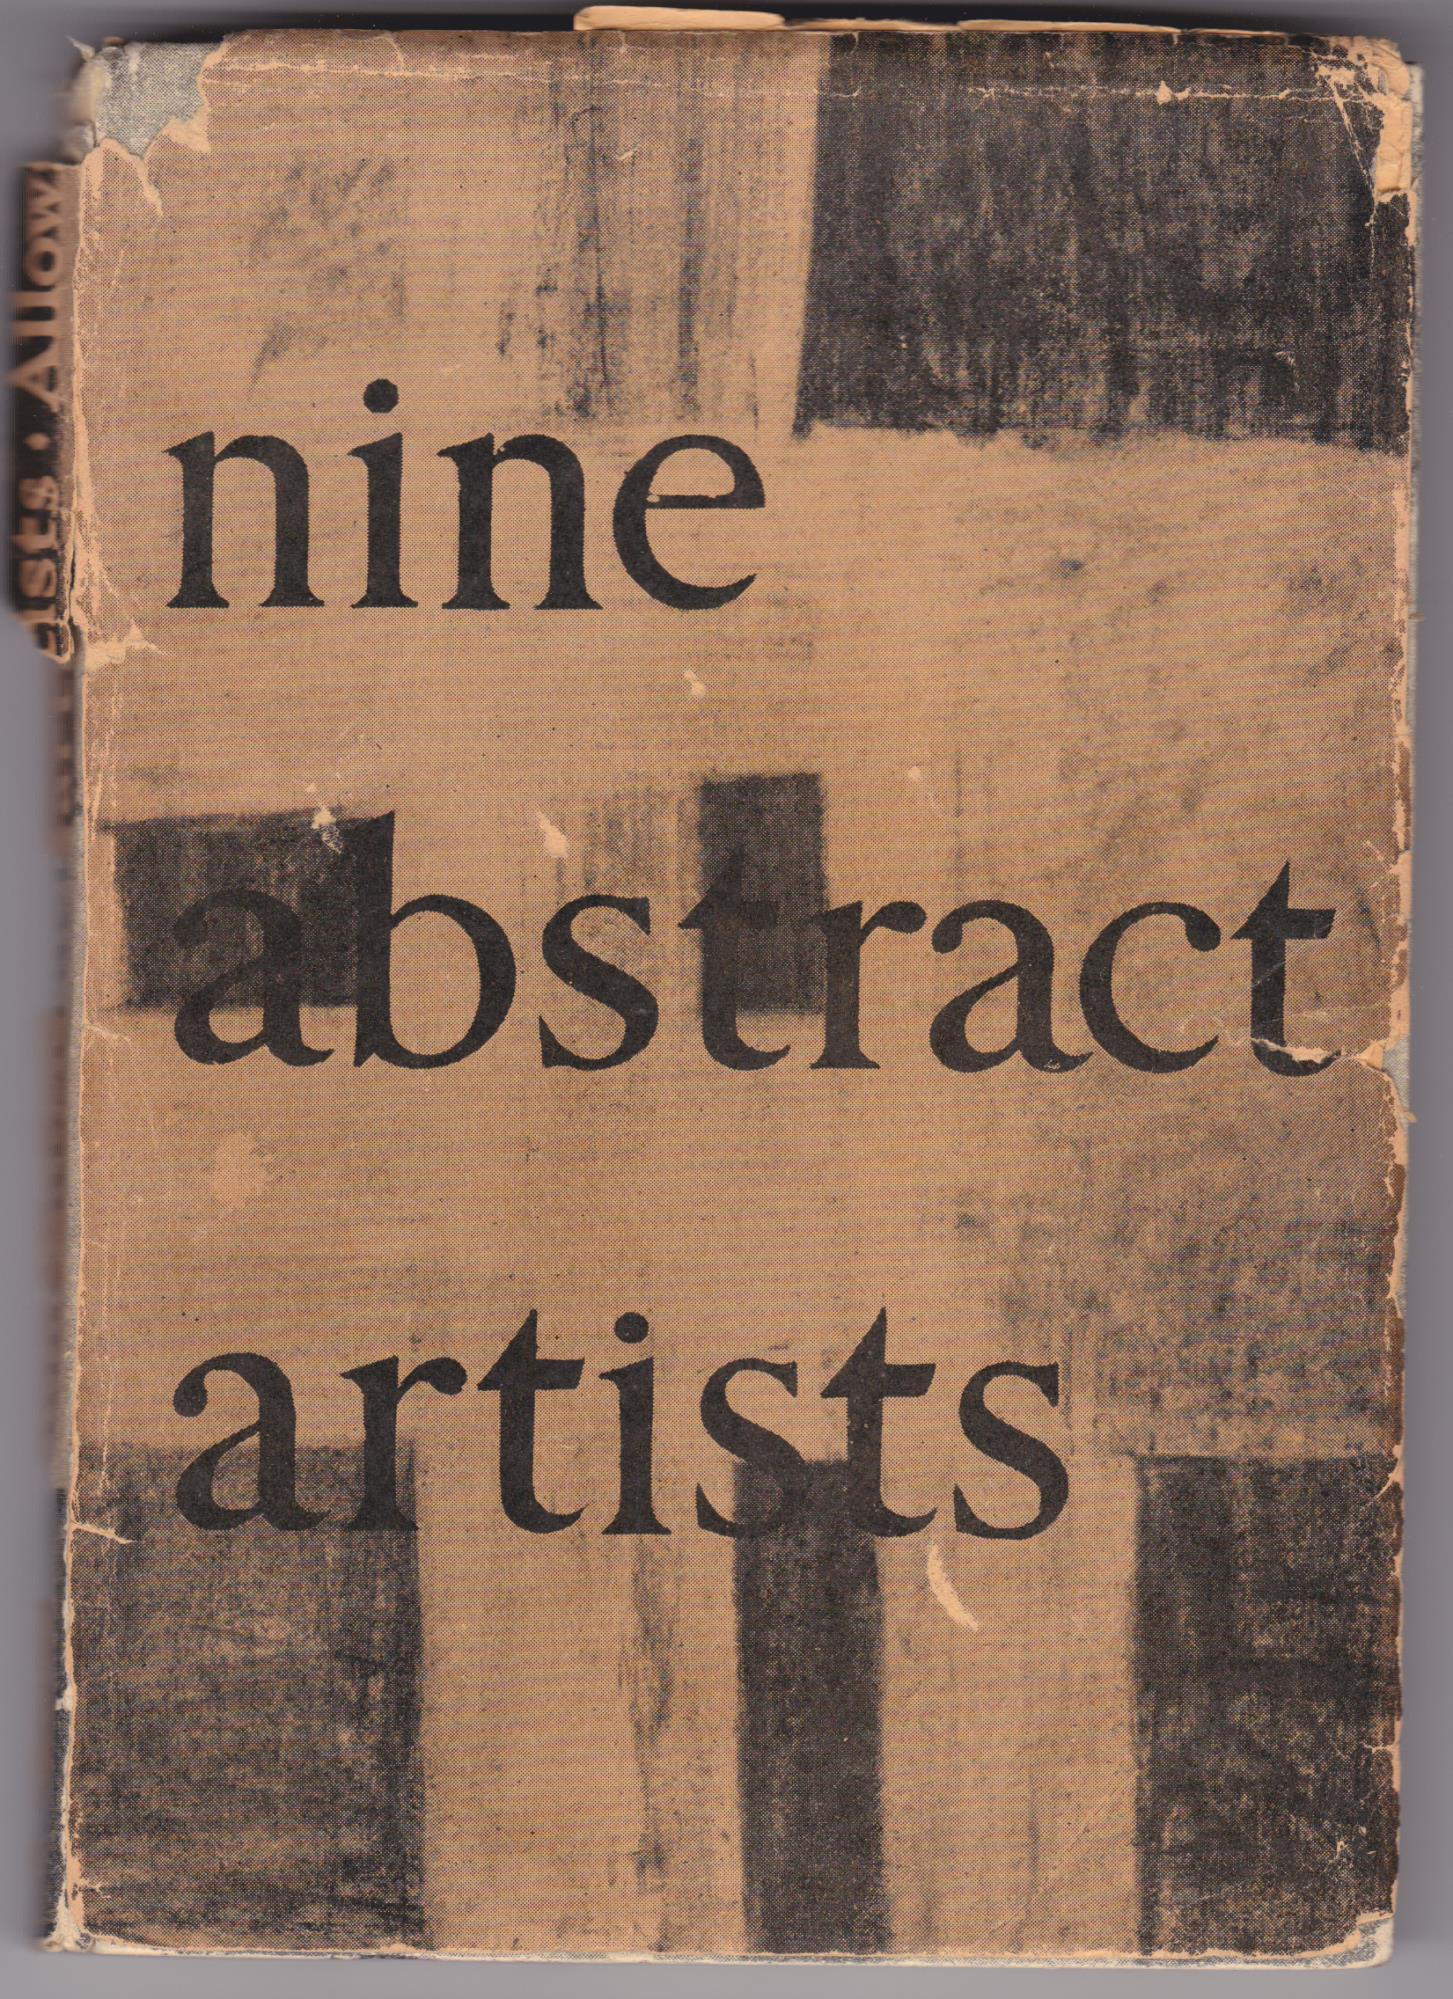 <i>Nine Abstract Artists</i> by Lawrence Alloway (1954).